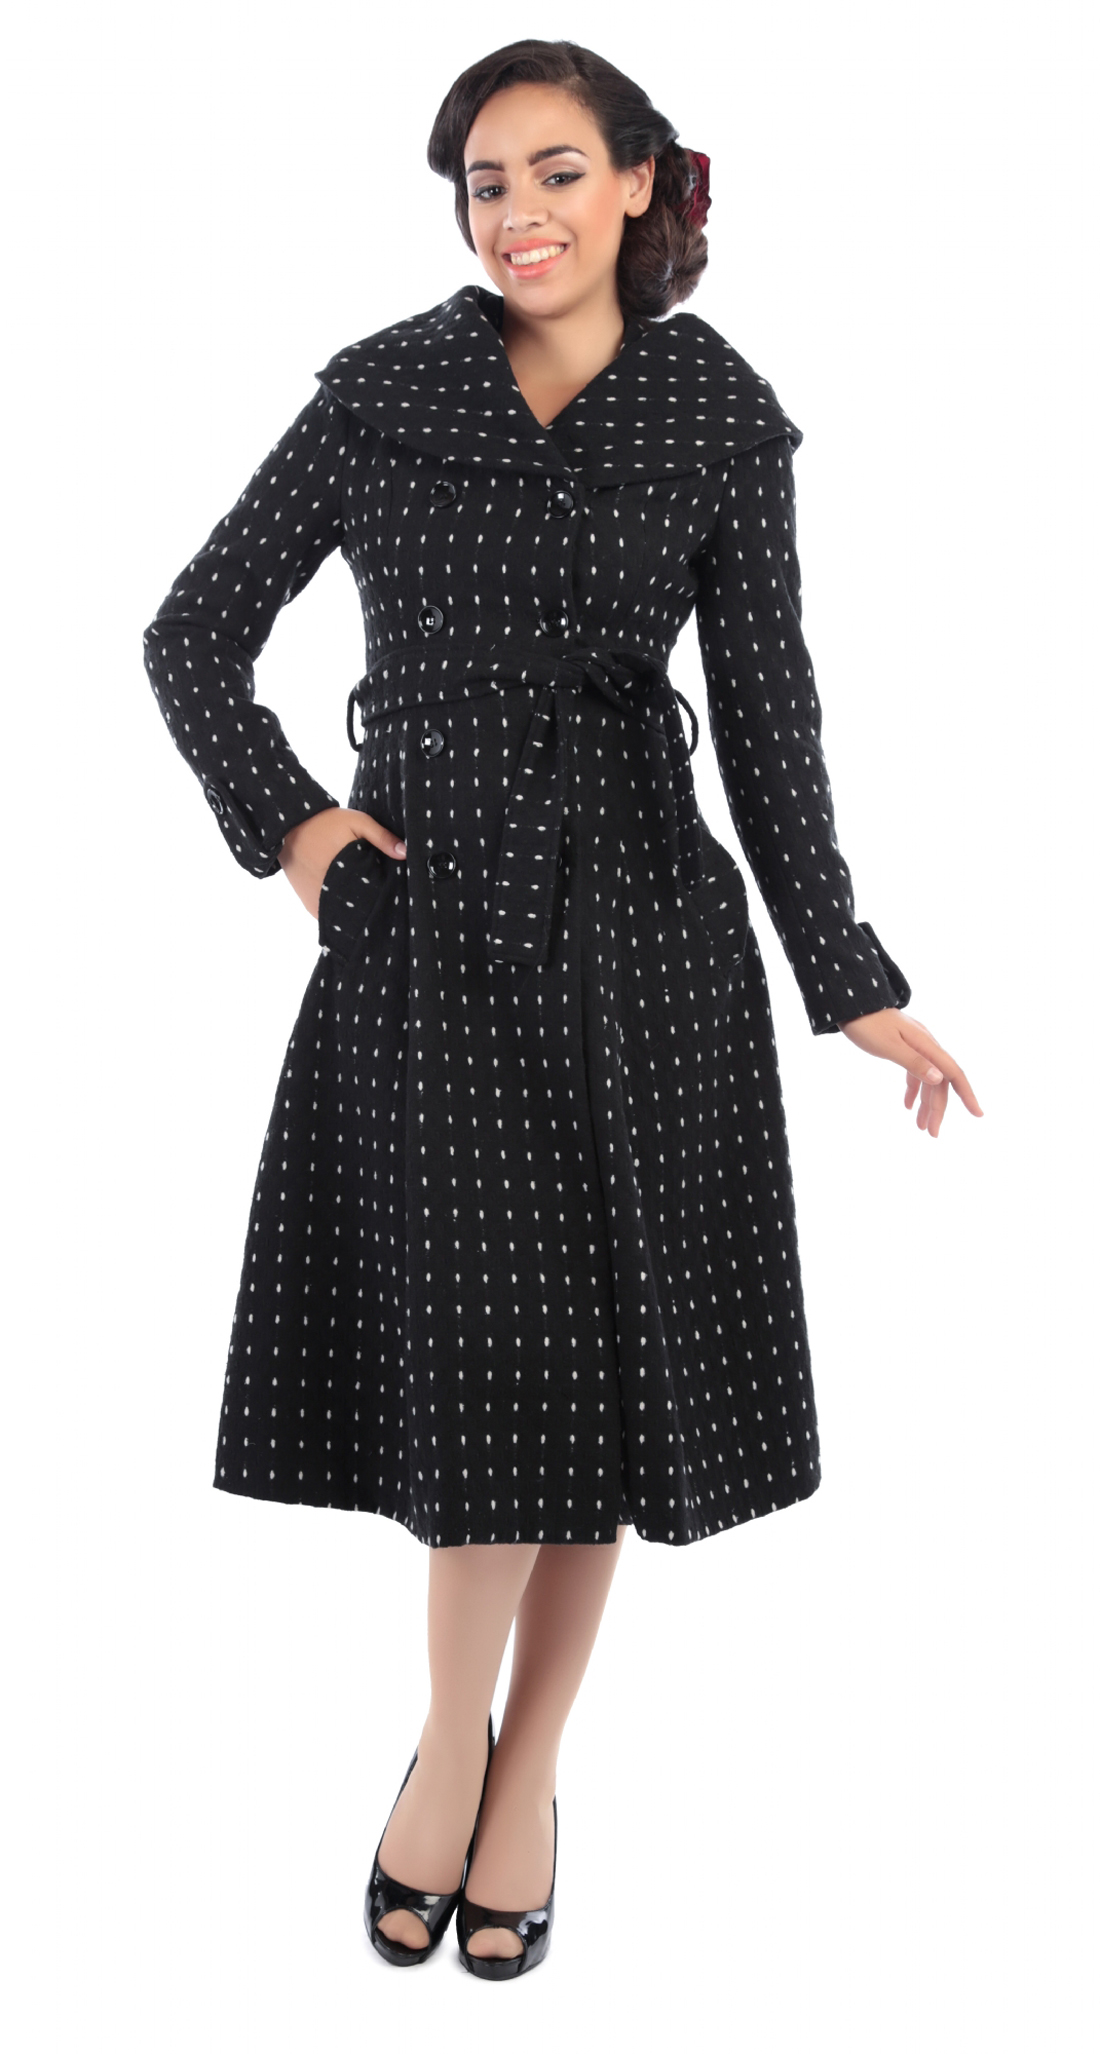 Aida zak barbara polka dots vintage pin up coat mantel - Rockabilly mantel ...